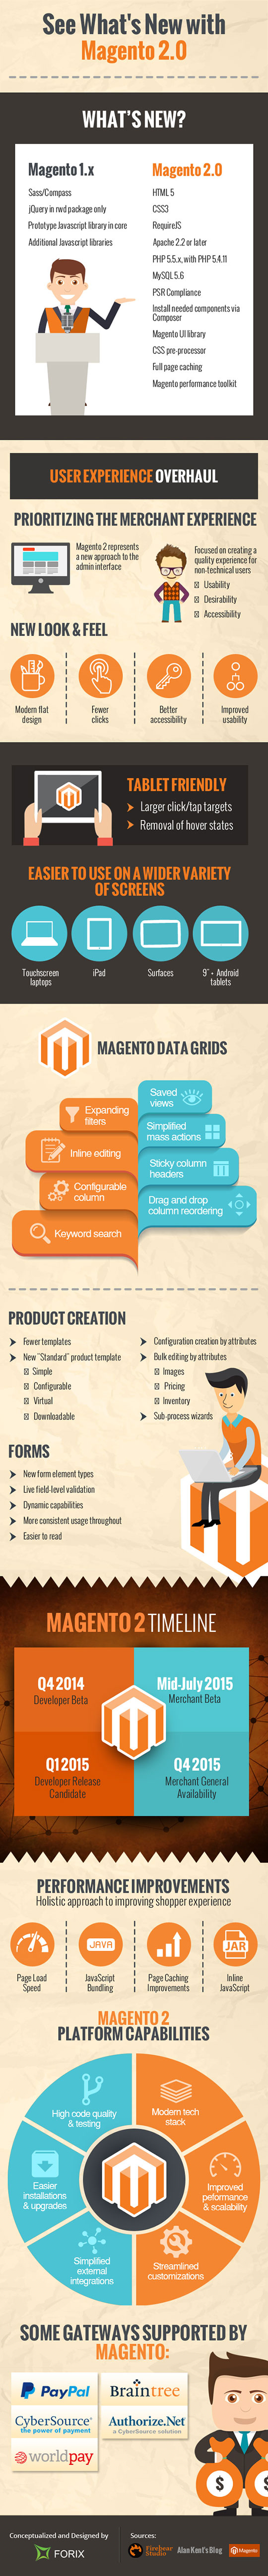 What's New With Magento 2.0 (Infographic)